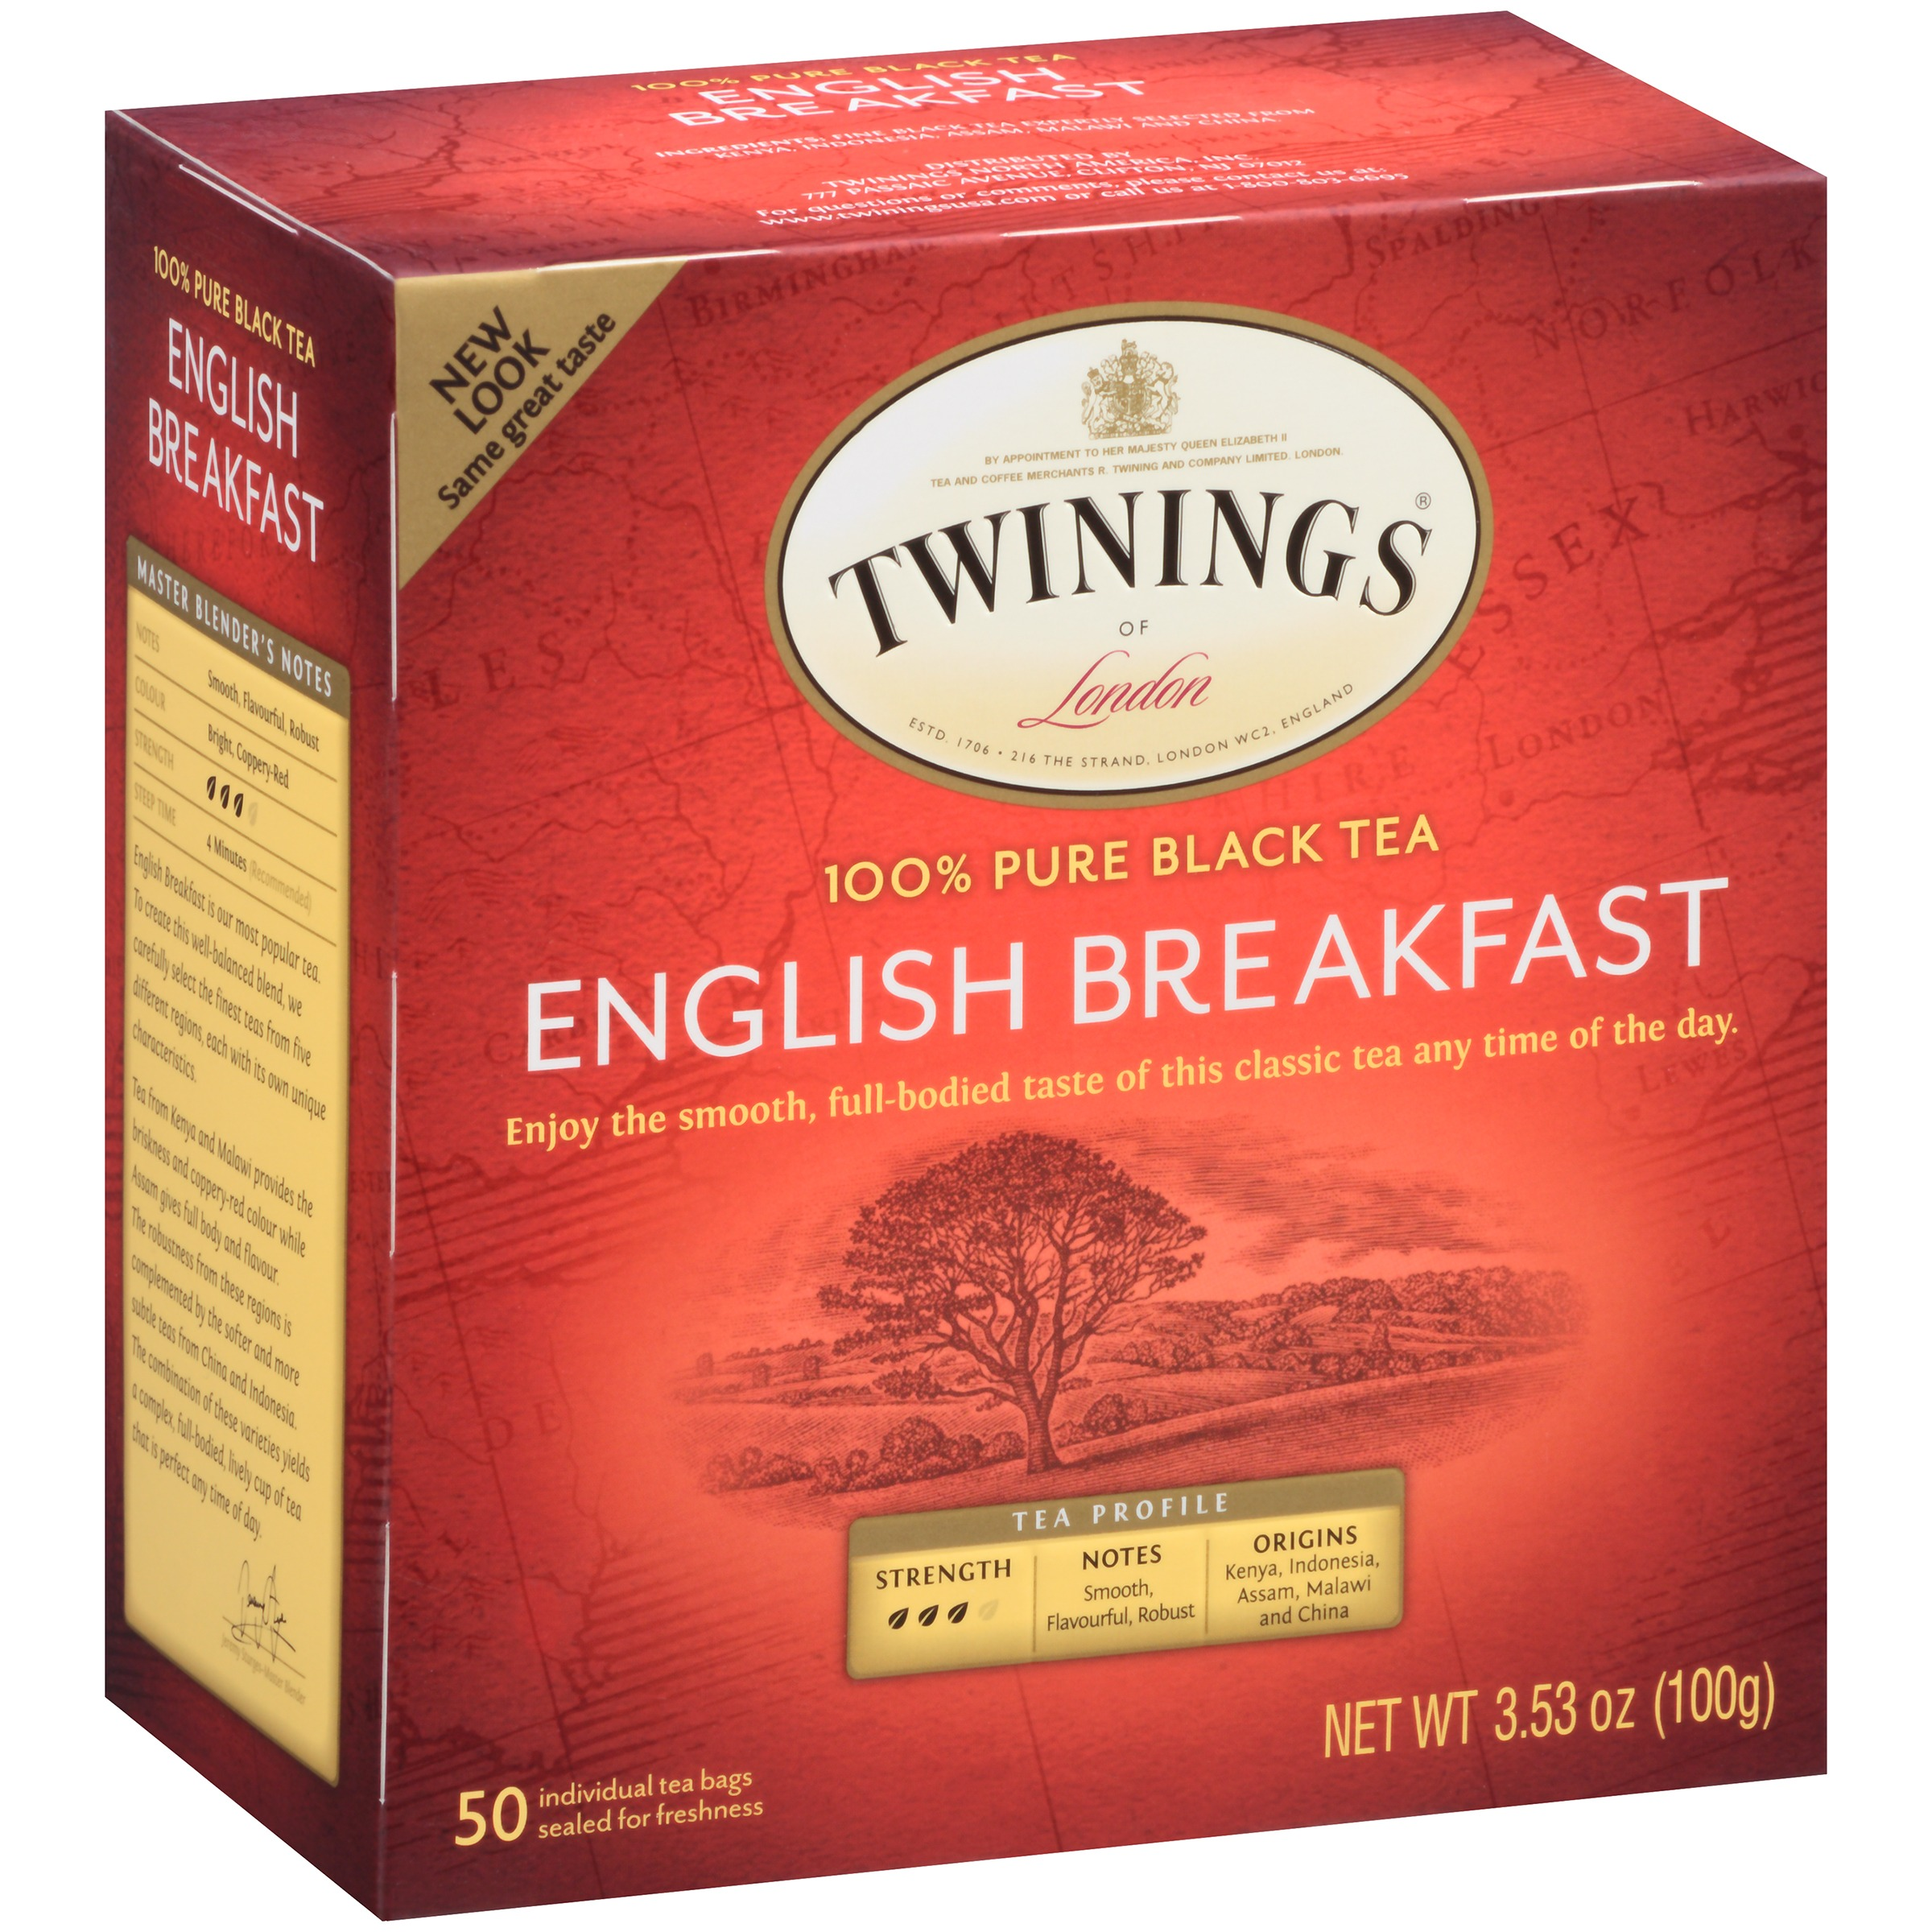 Twinings of London English Breakfast 100% Pure Black Tea, 50 count, 3.53 oz